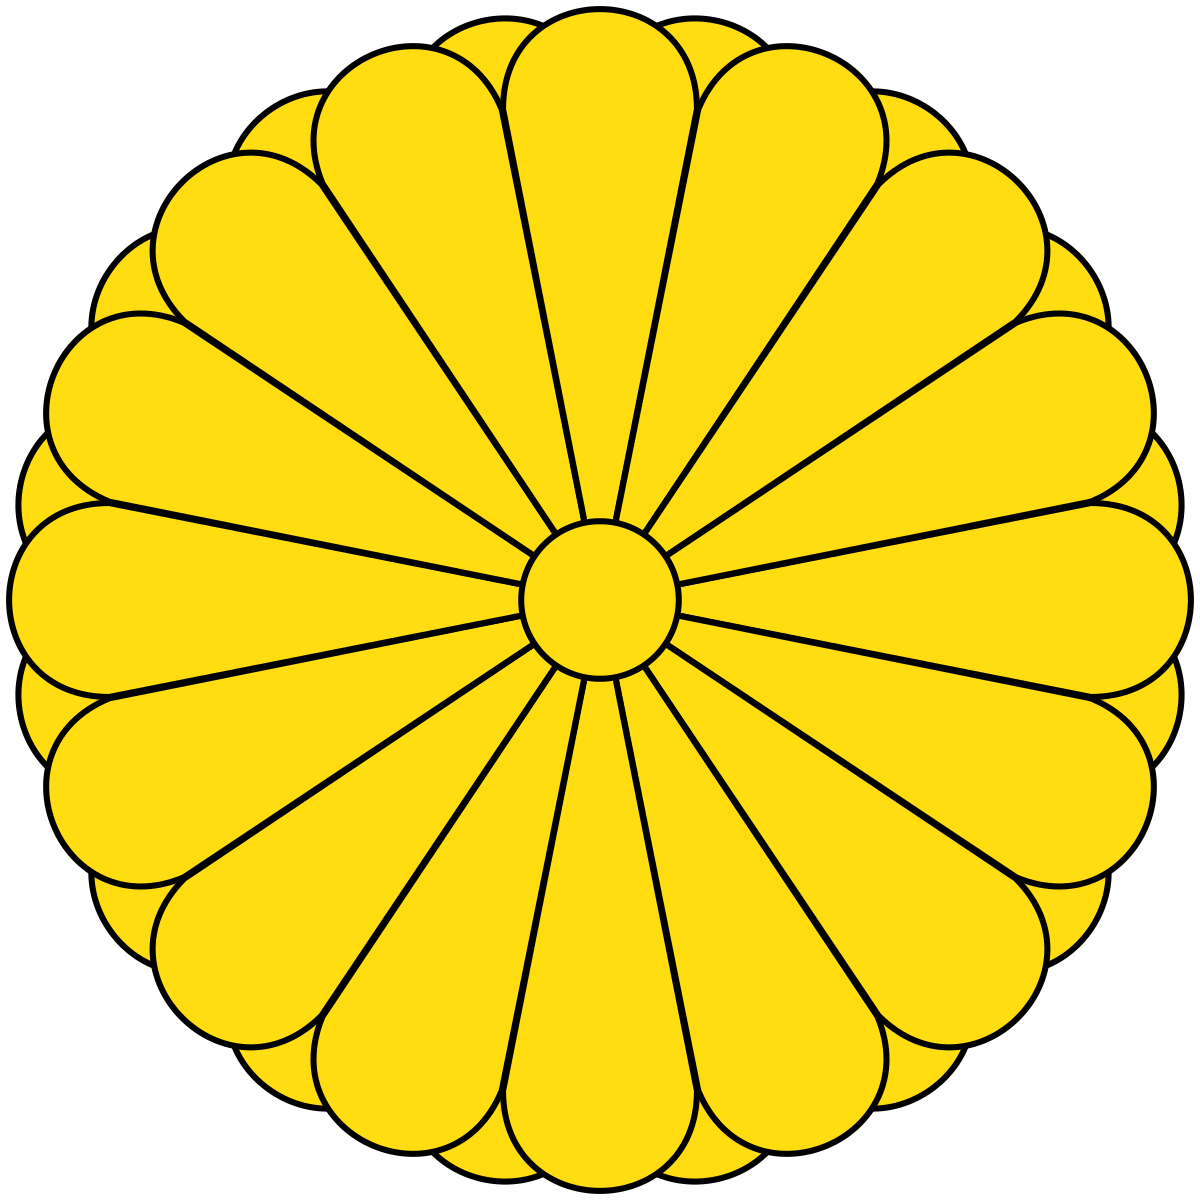 Medallion vector gold stamp. Consulate general of japan